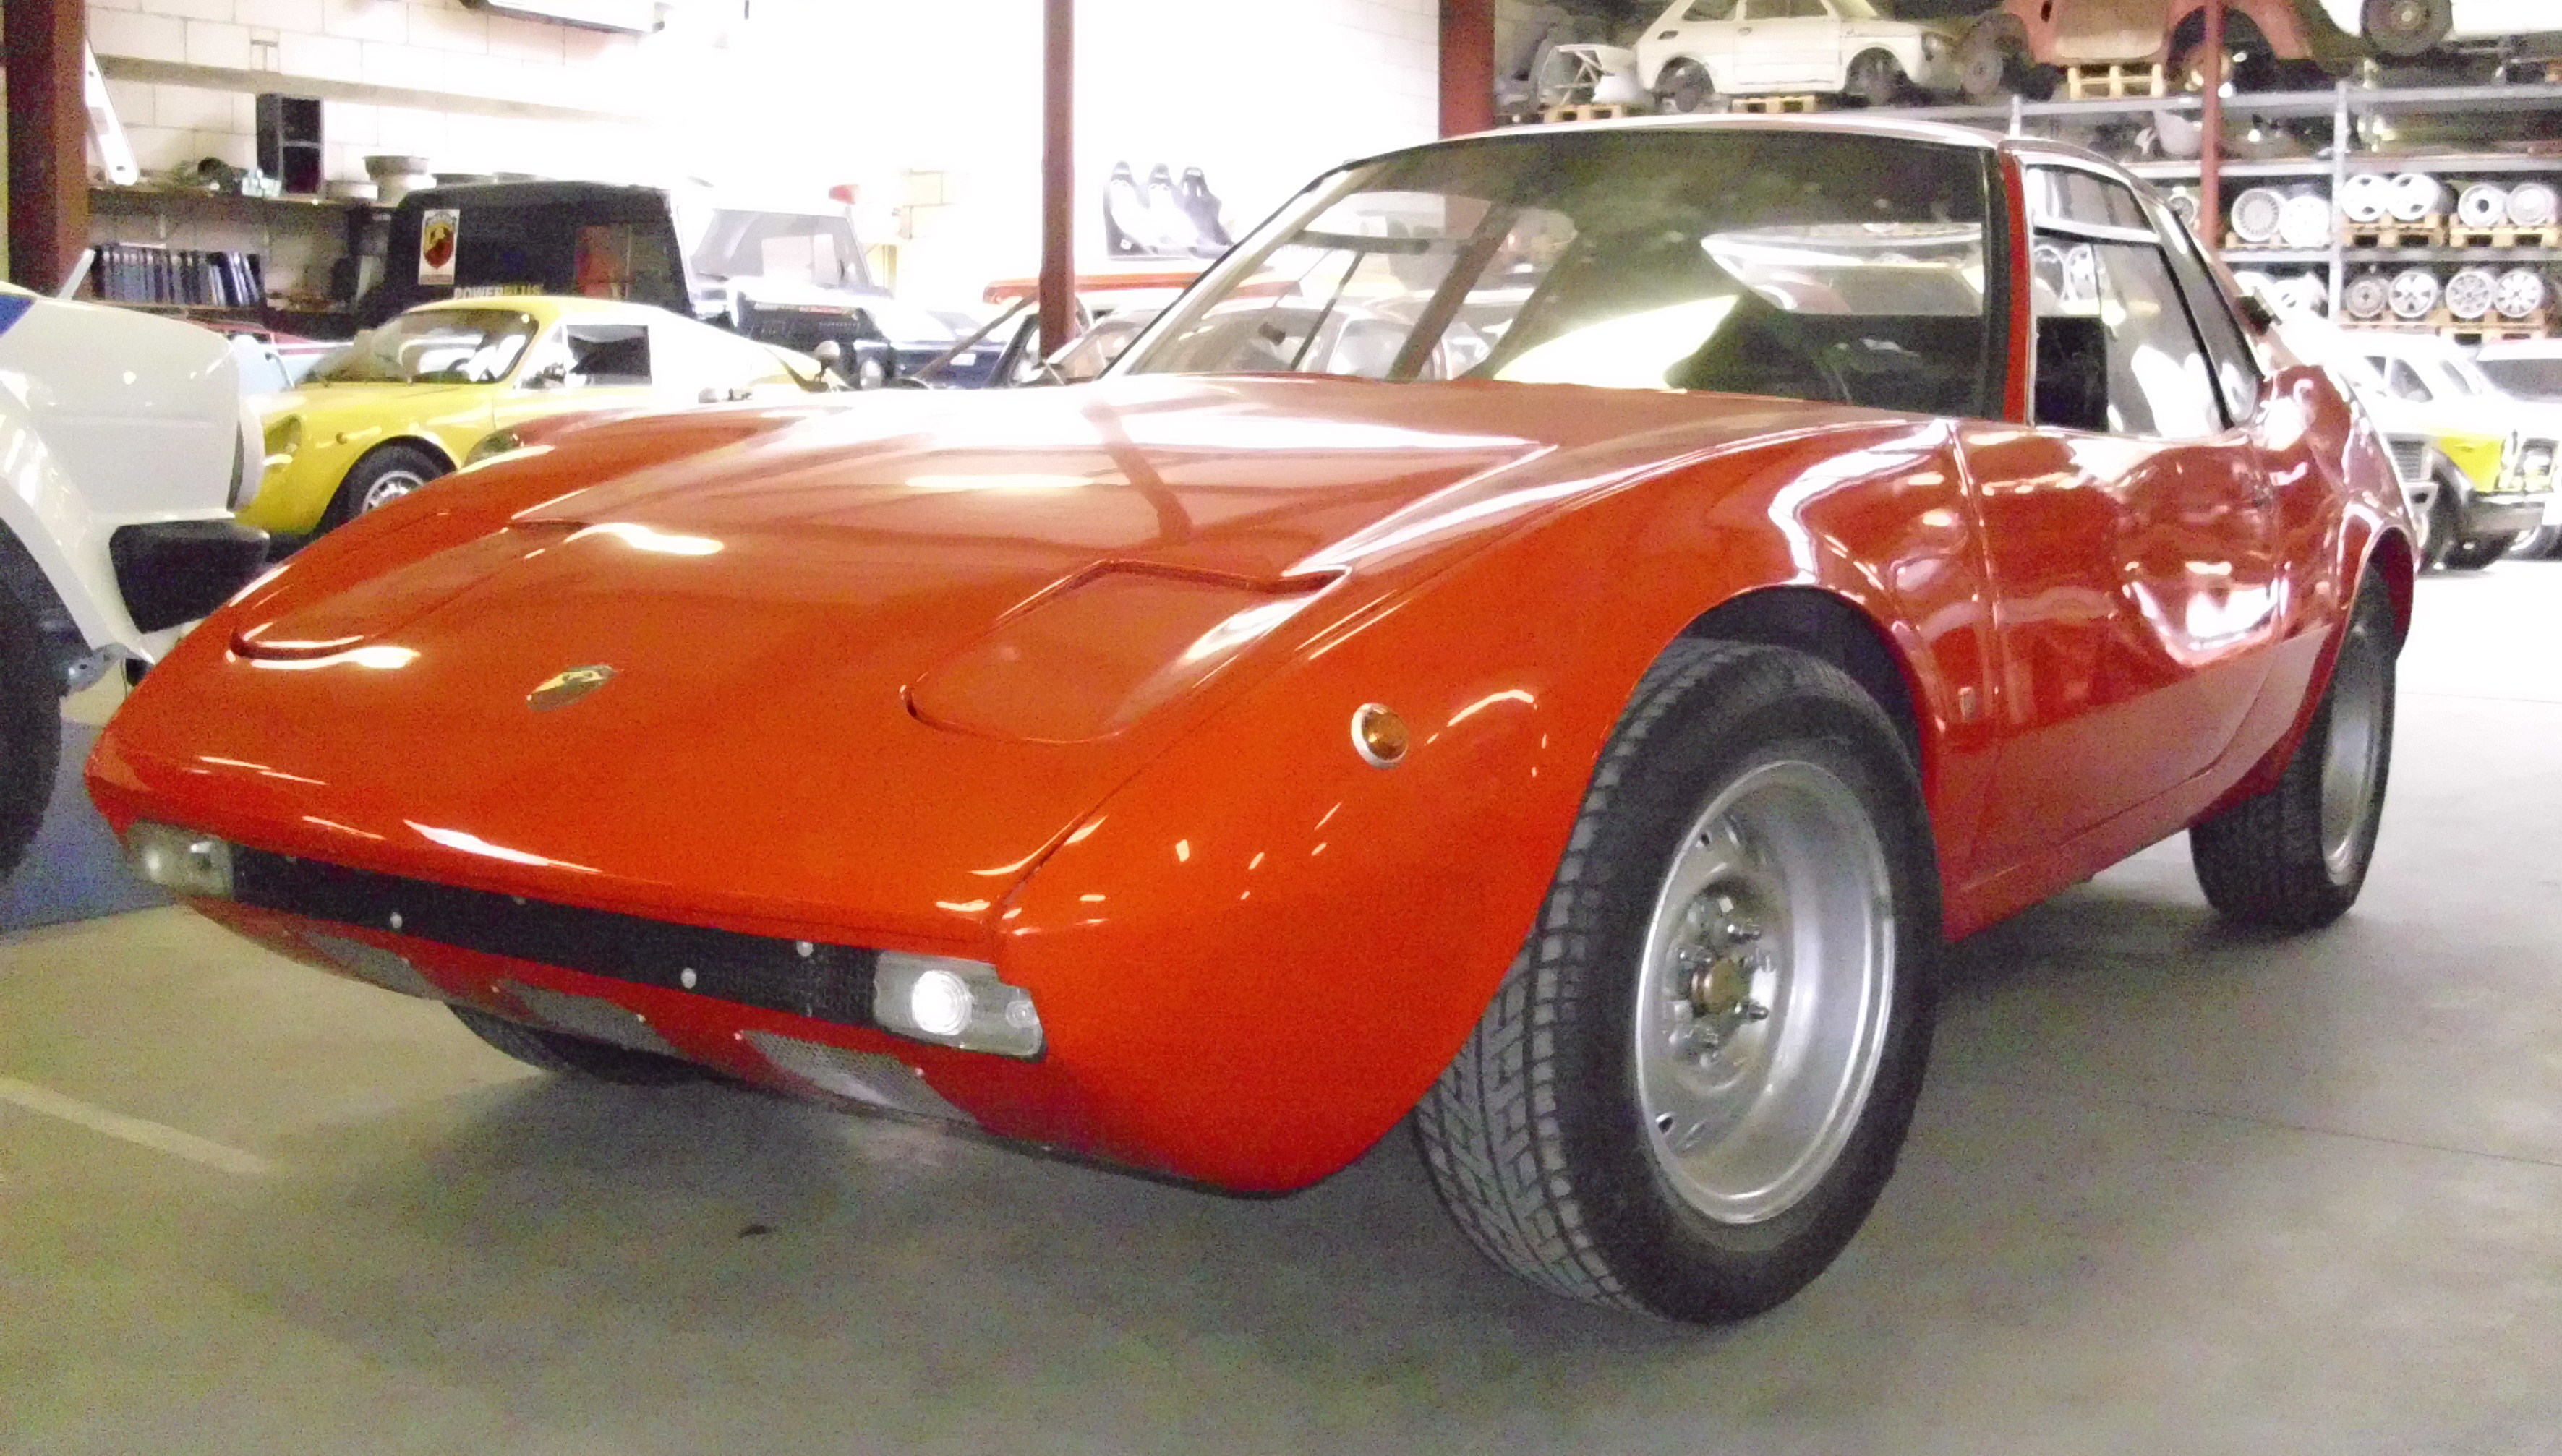 File:Abarth Scorpione 1969 schräg.JPG - Wikimedia Commons